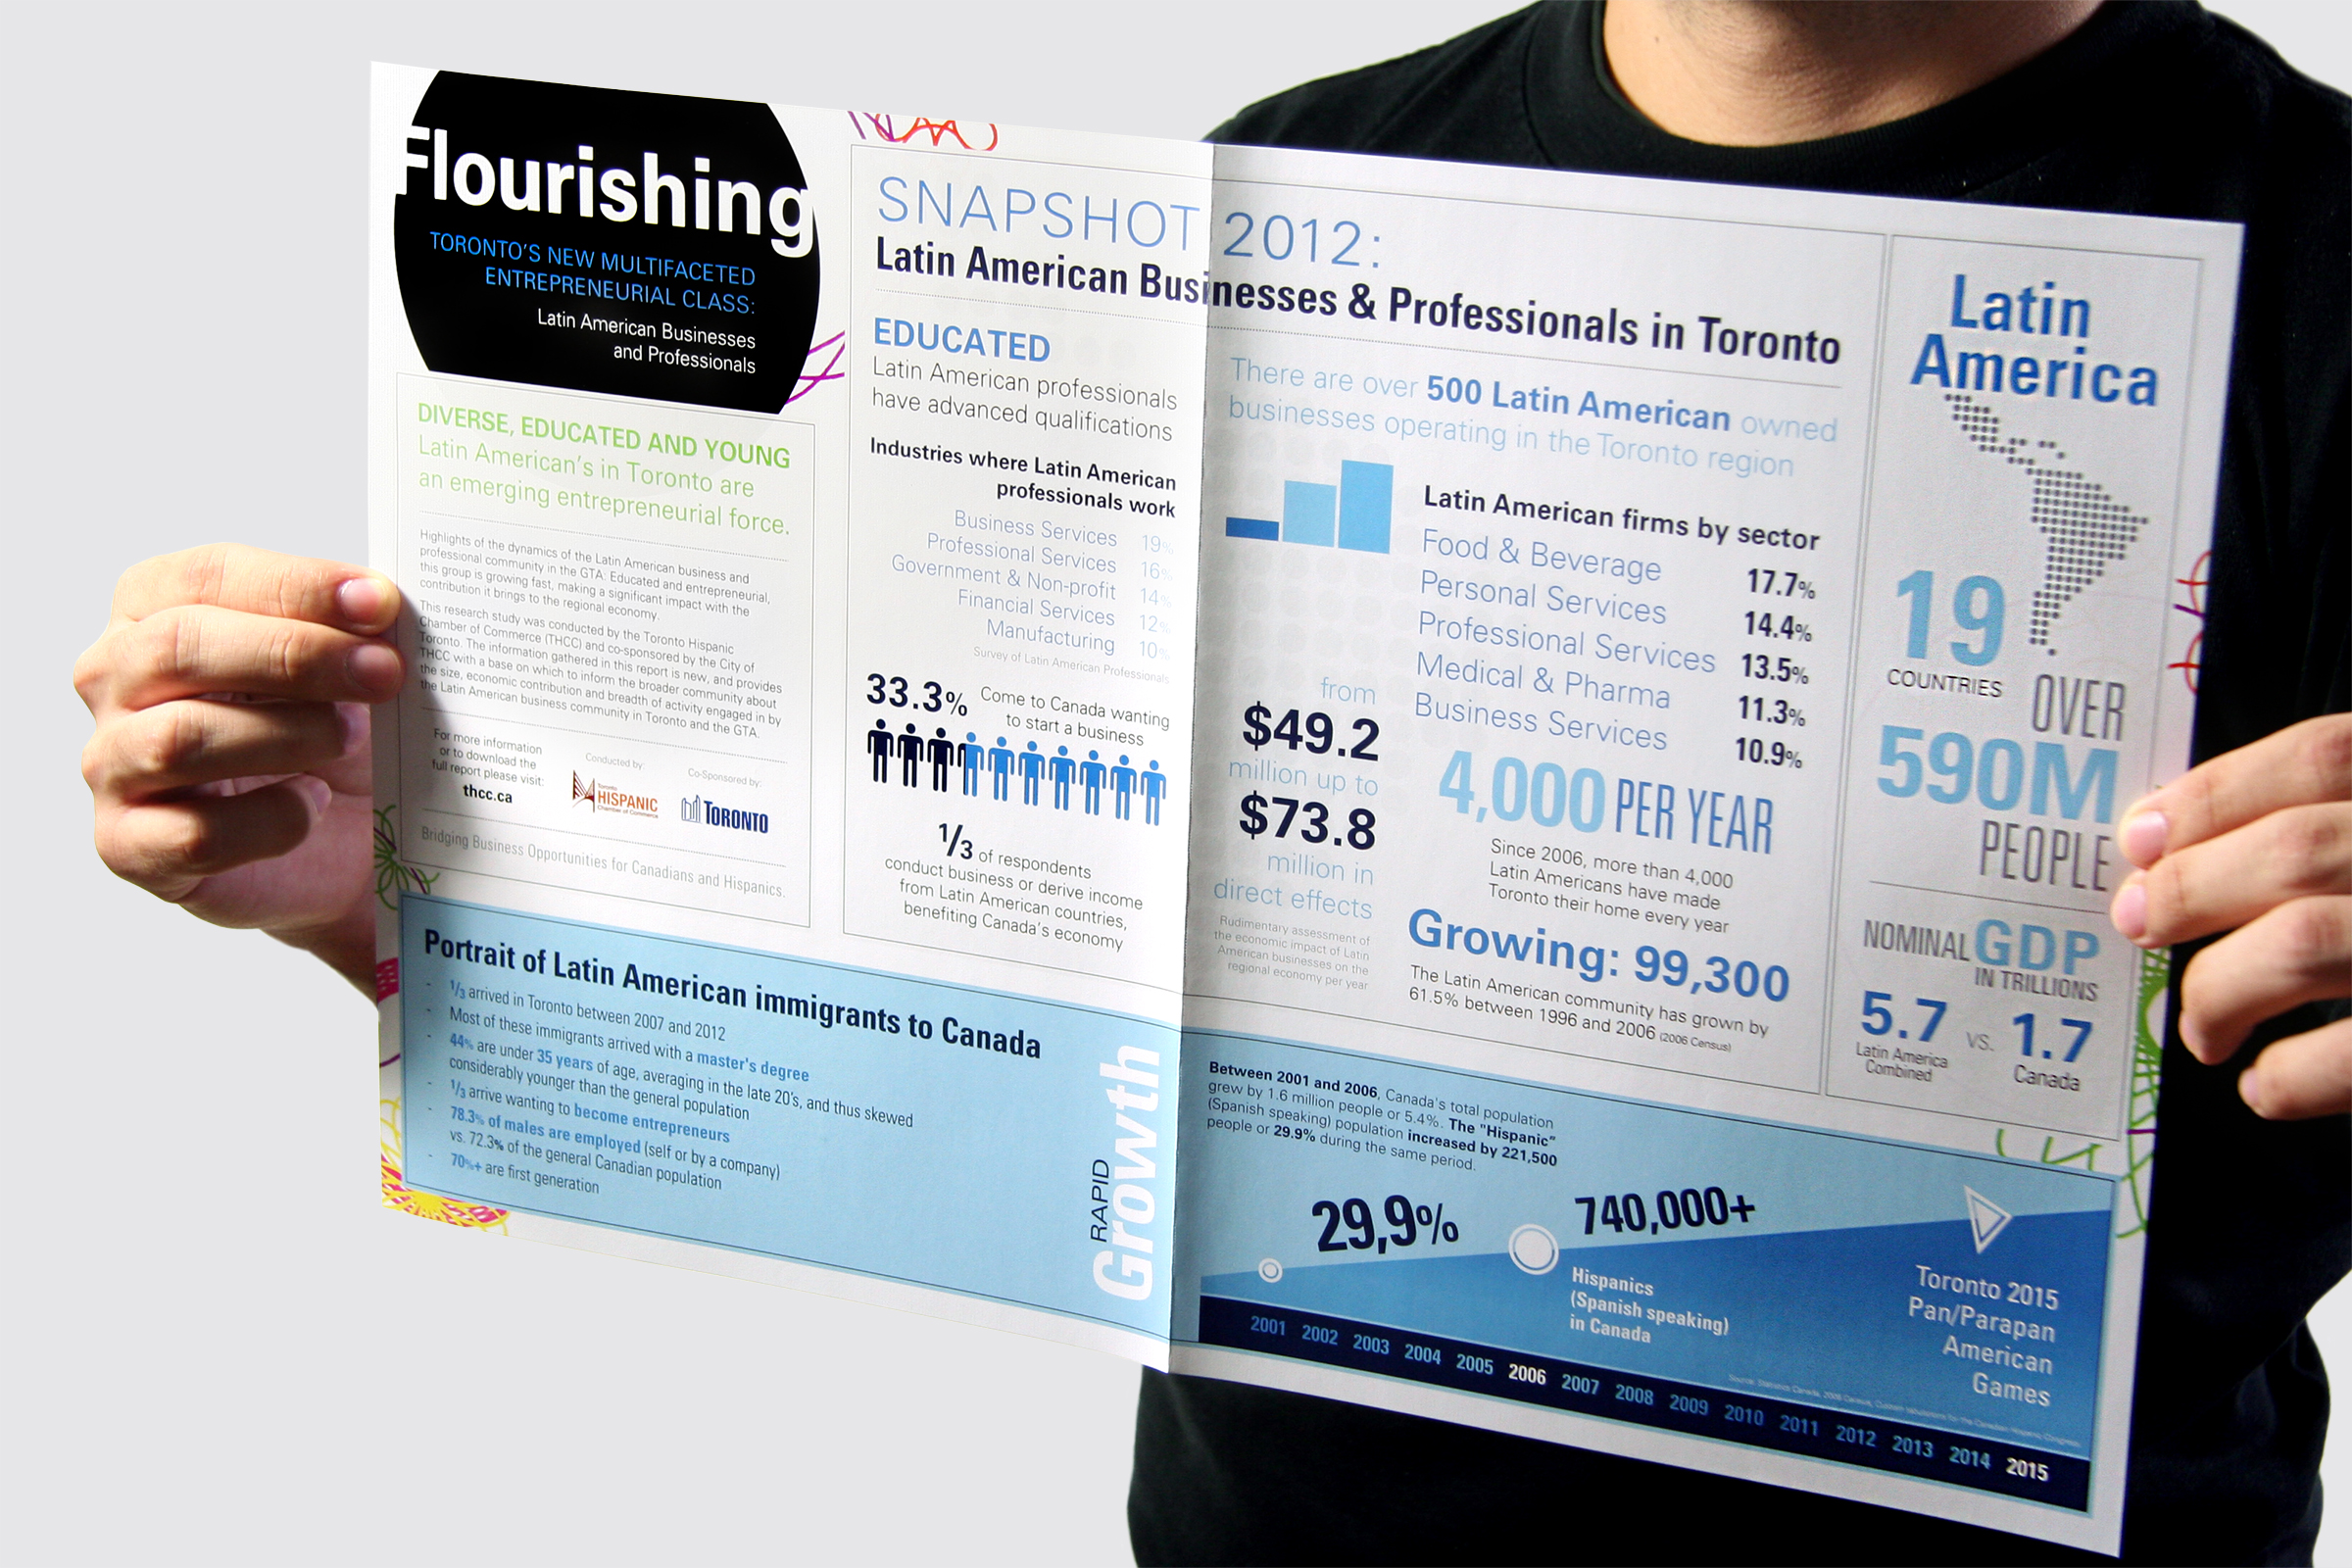 Flourishing Infographic